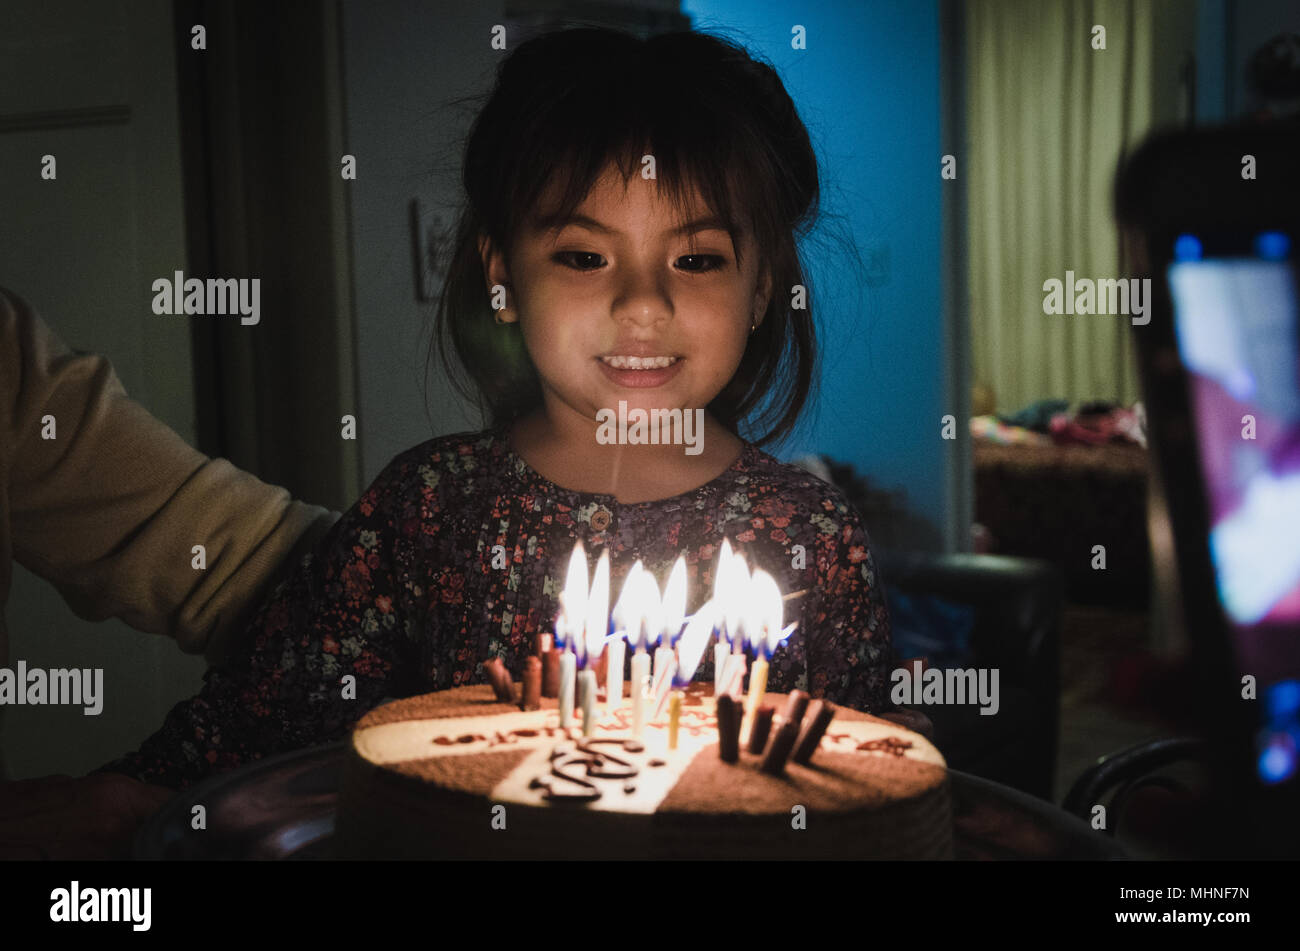 Cake with candles in front of an excited girl - Stock Image